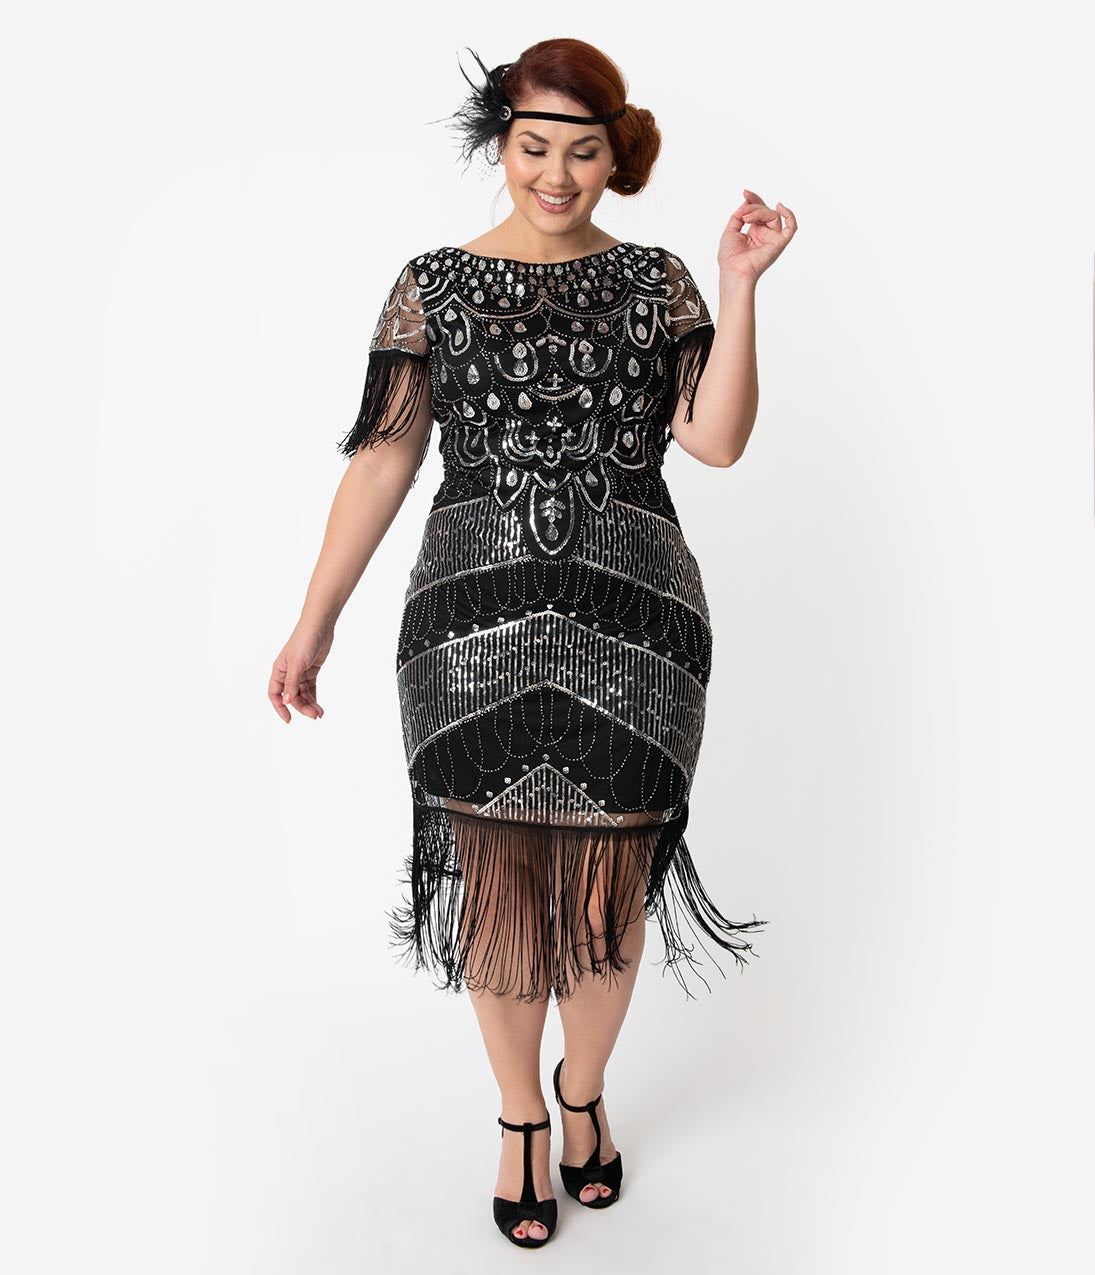 Flapper Dresses & Quality Flapper Costumes Unique Vintage Plus Size Black  Silver Sequin Fringe Sleeved Laure Flapper Dress $98.00 AT vintagedancer.com